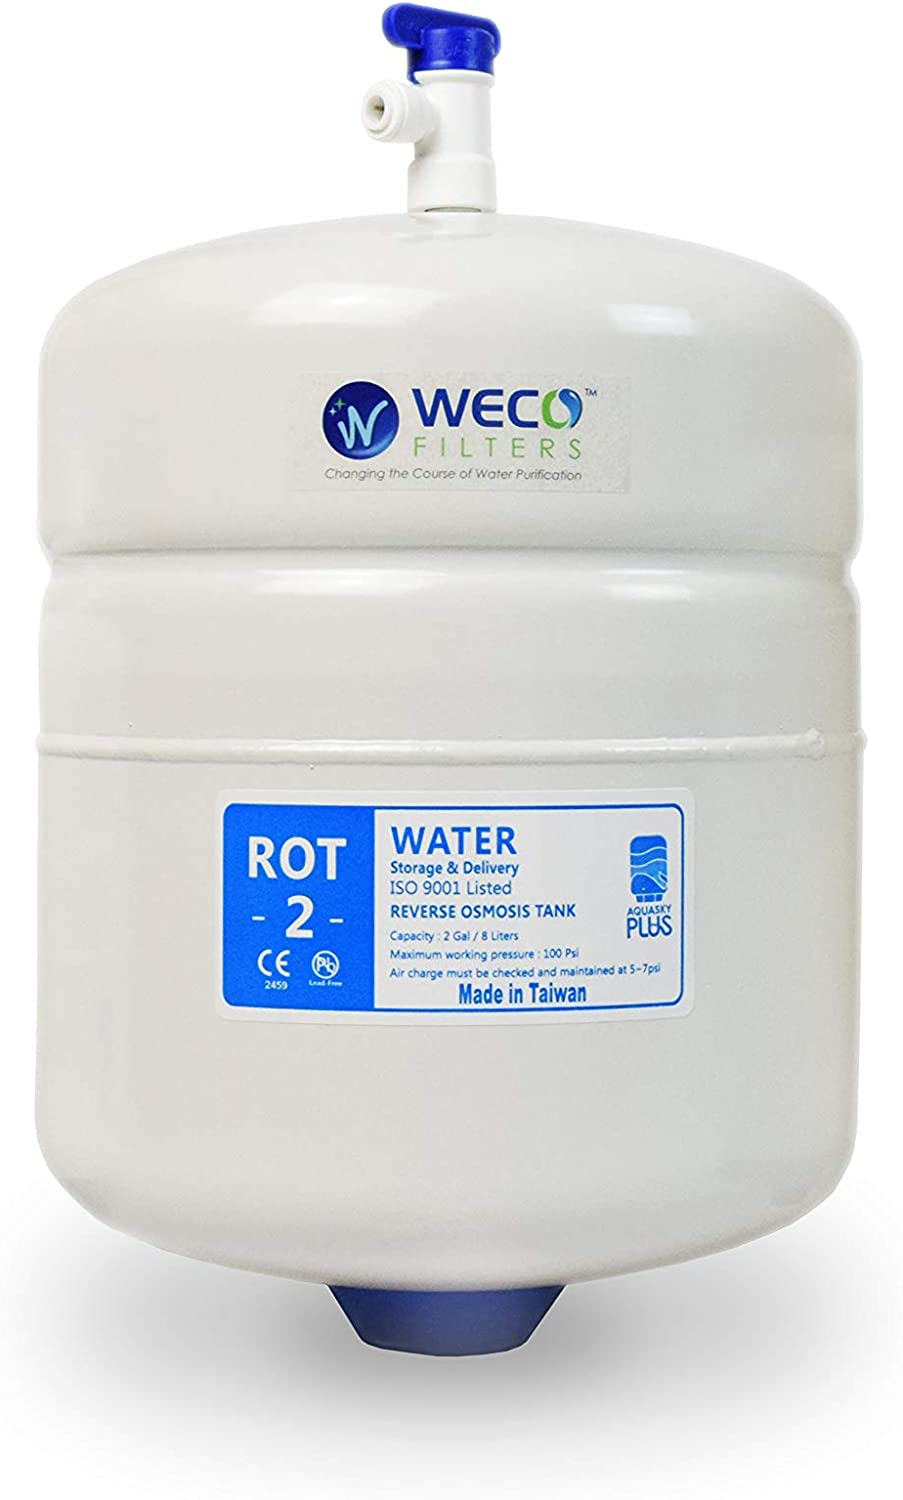 6 Gal Usable Capacity Total Capacity 10 Gal /& appx ROT-10-W Pressurized RO Water Storage Tank